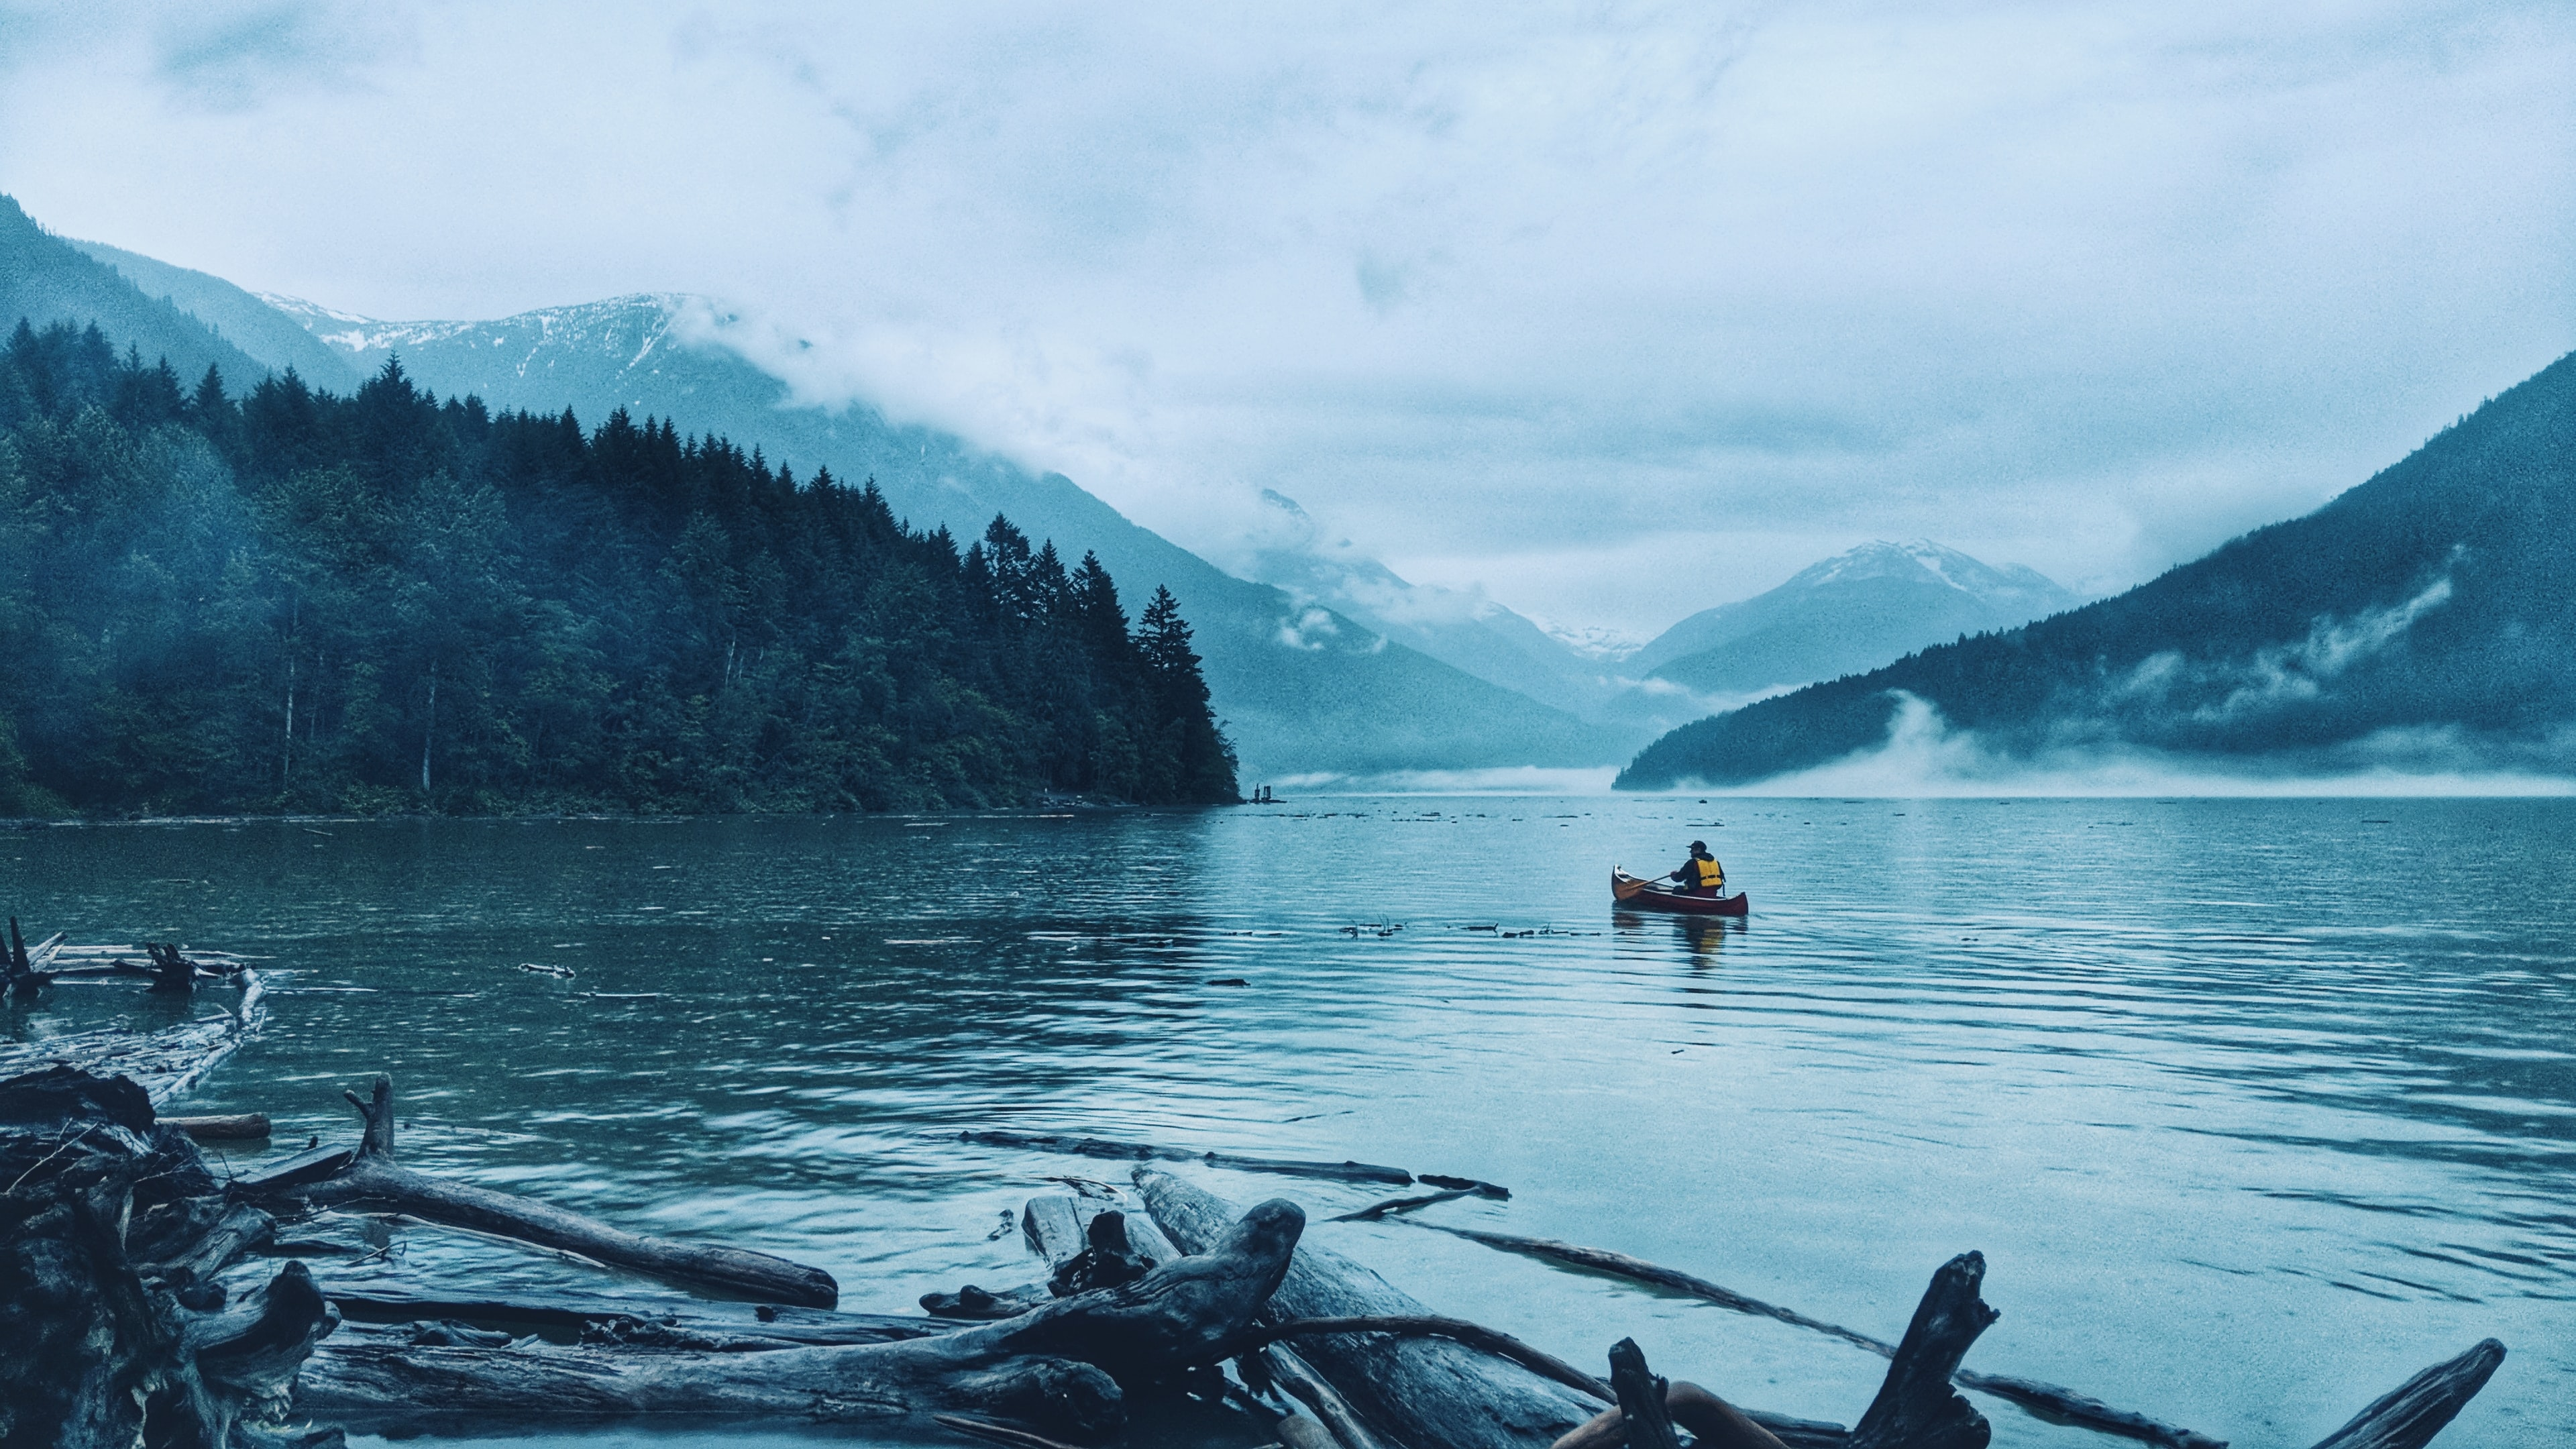 person riding canoe in the middle of lake